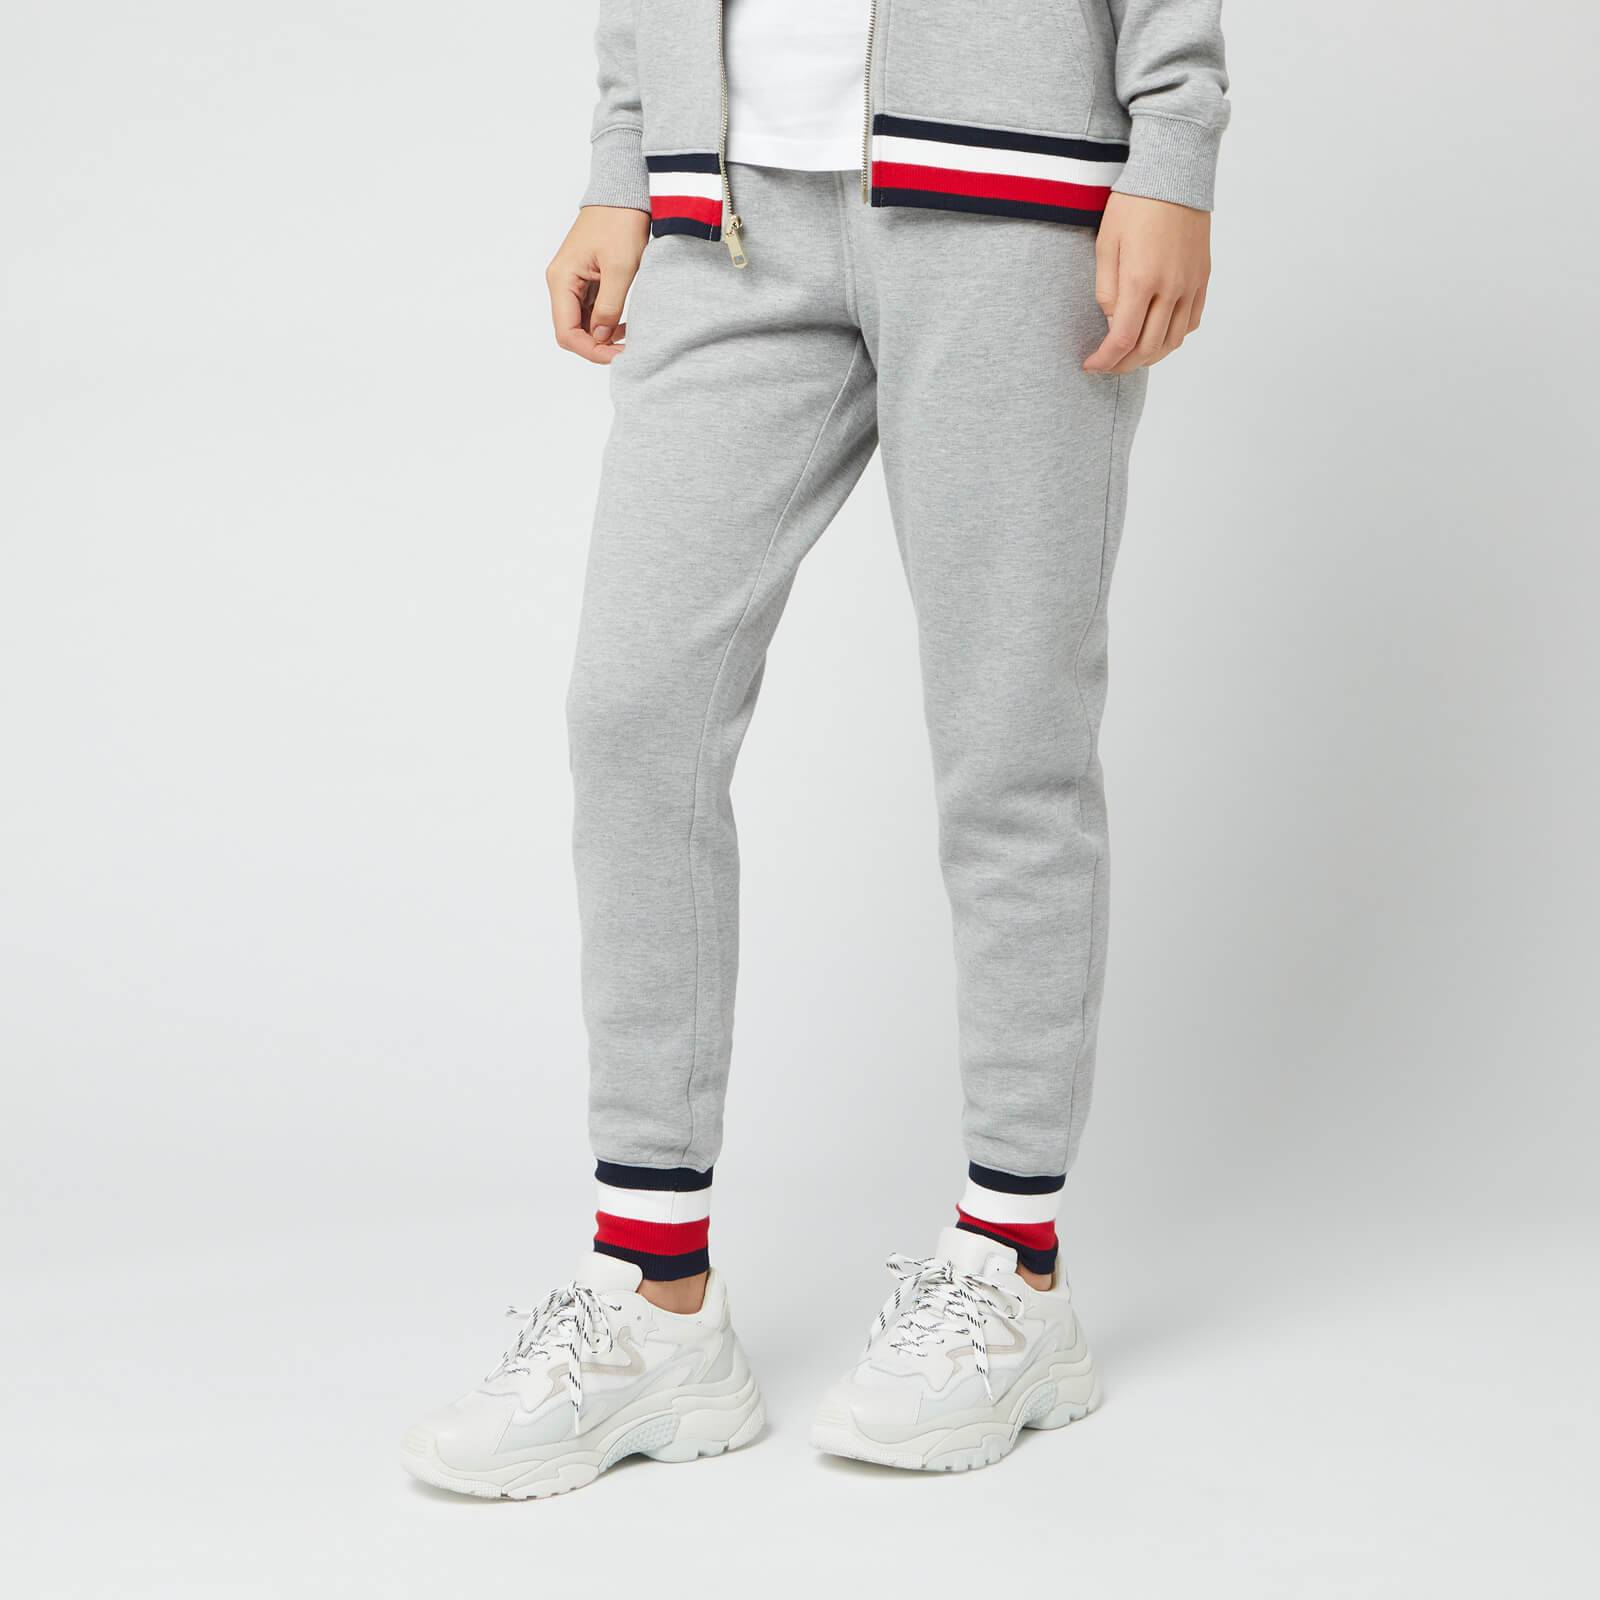 Tommy Hilfiger Women's Heritage Sweatpants - Light Grey Heather - XS